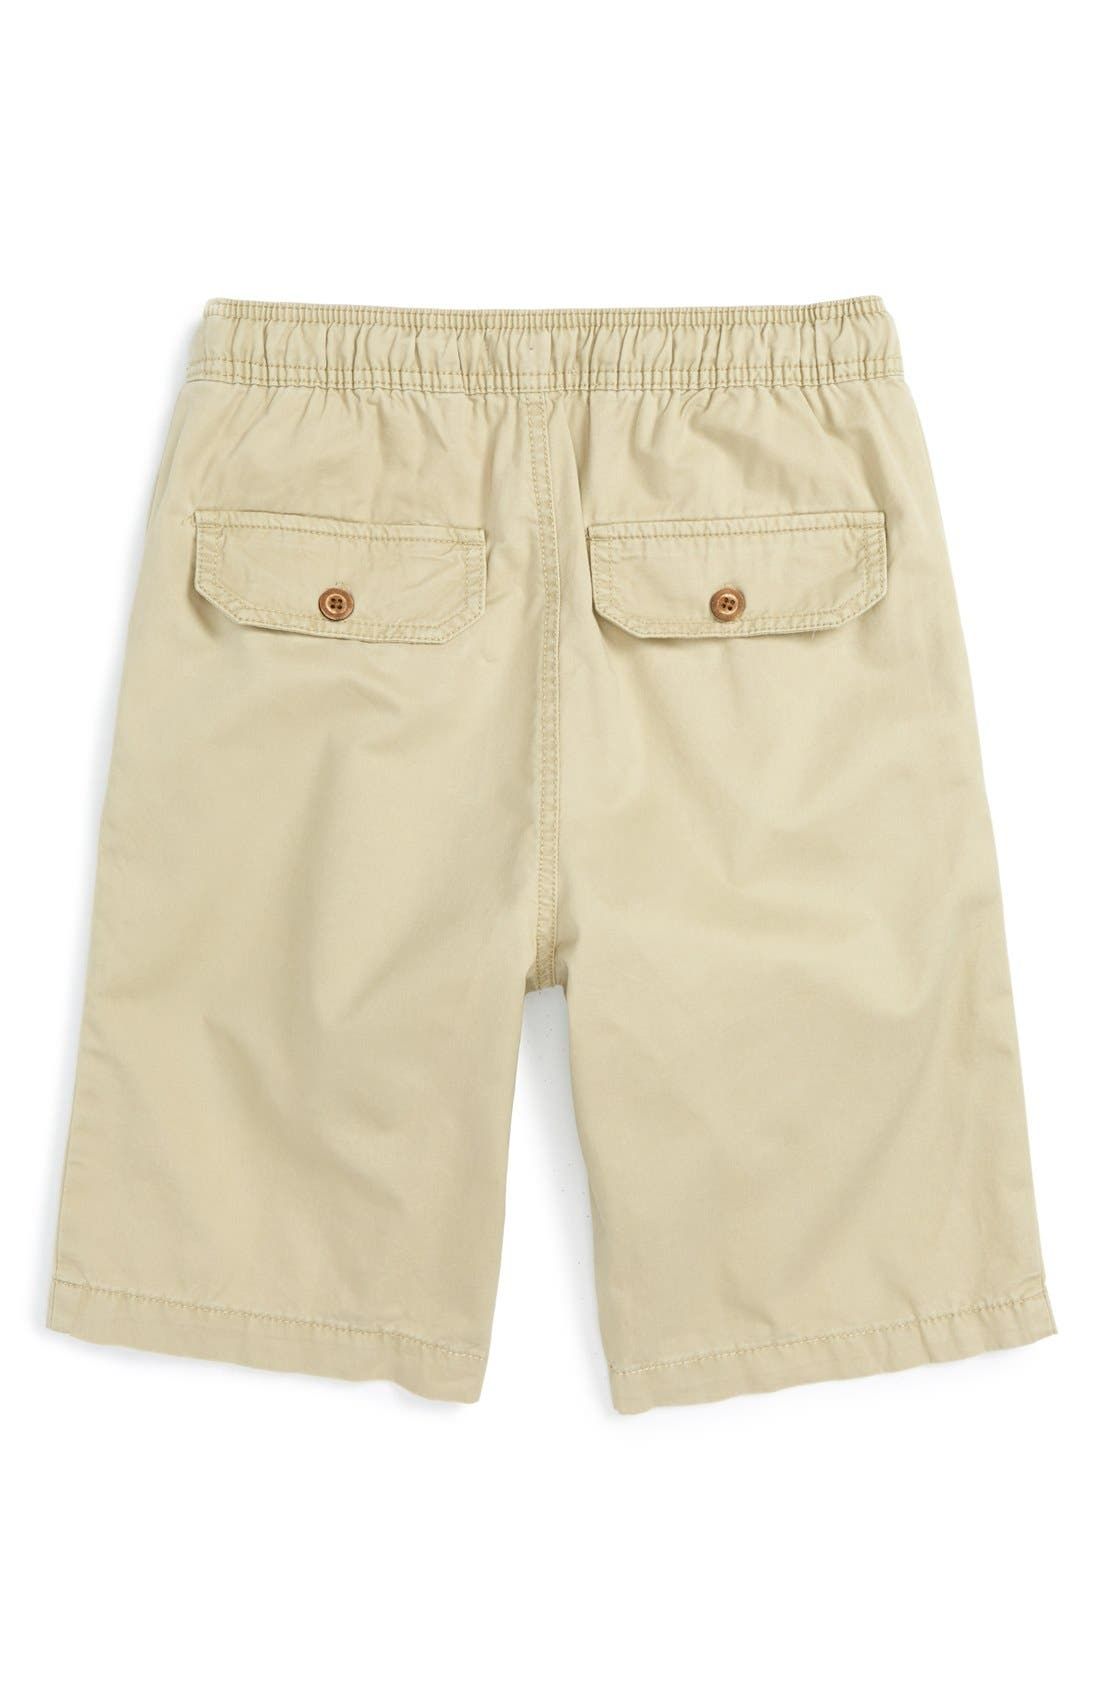 Alternate Image 2  - Tucker + Tate Cotton Twill Shorts (Toddler Boys, Little Boys & Big Boys)